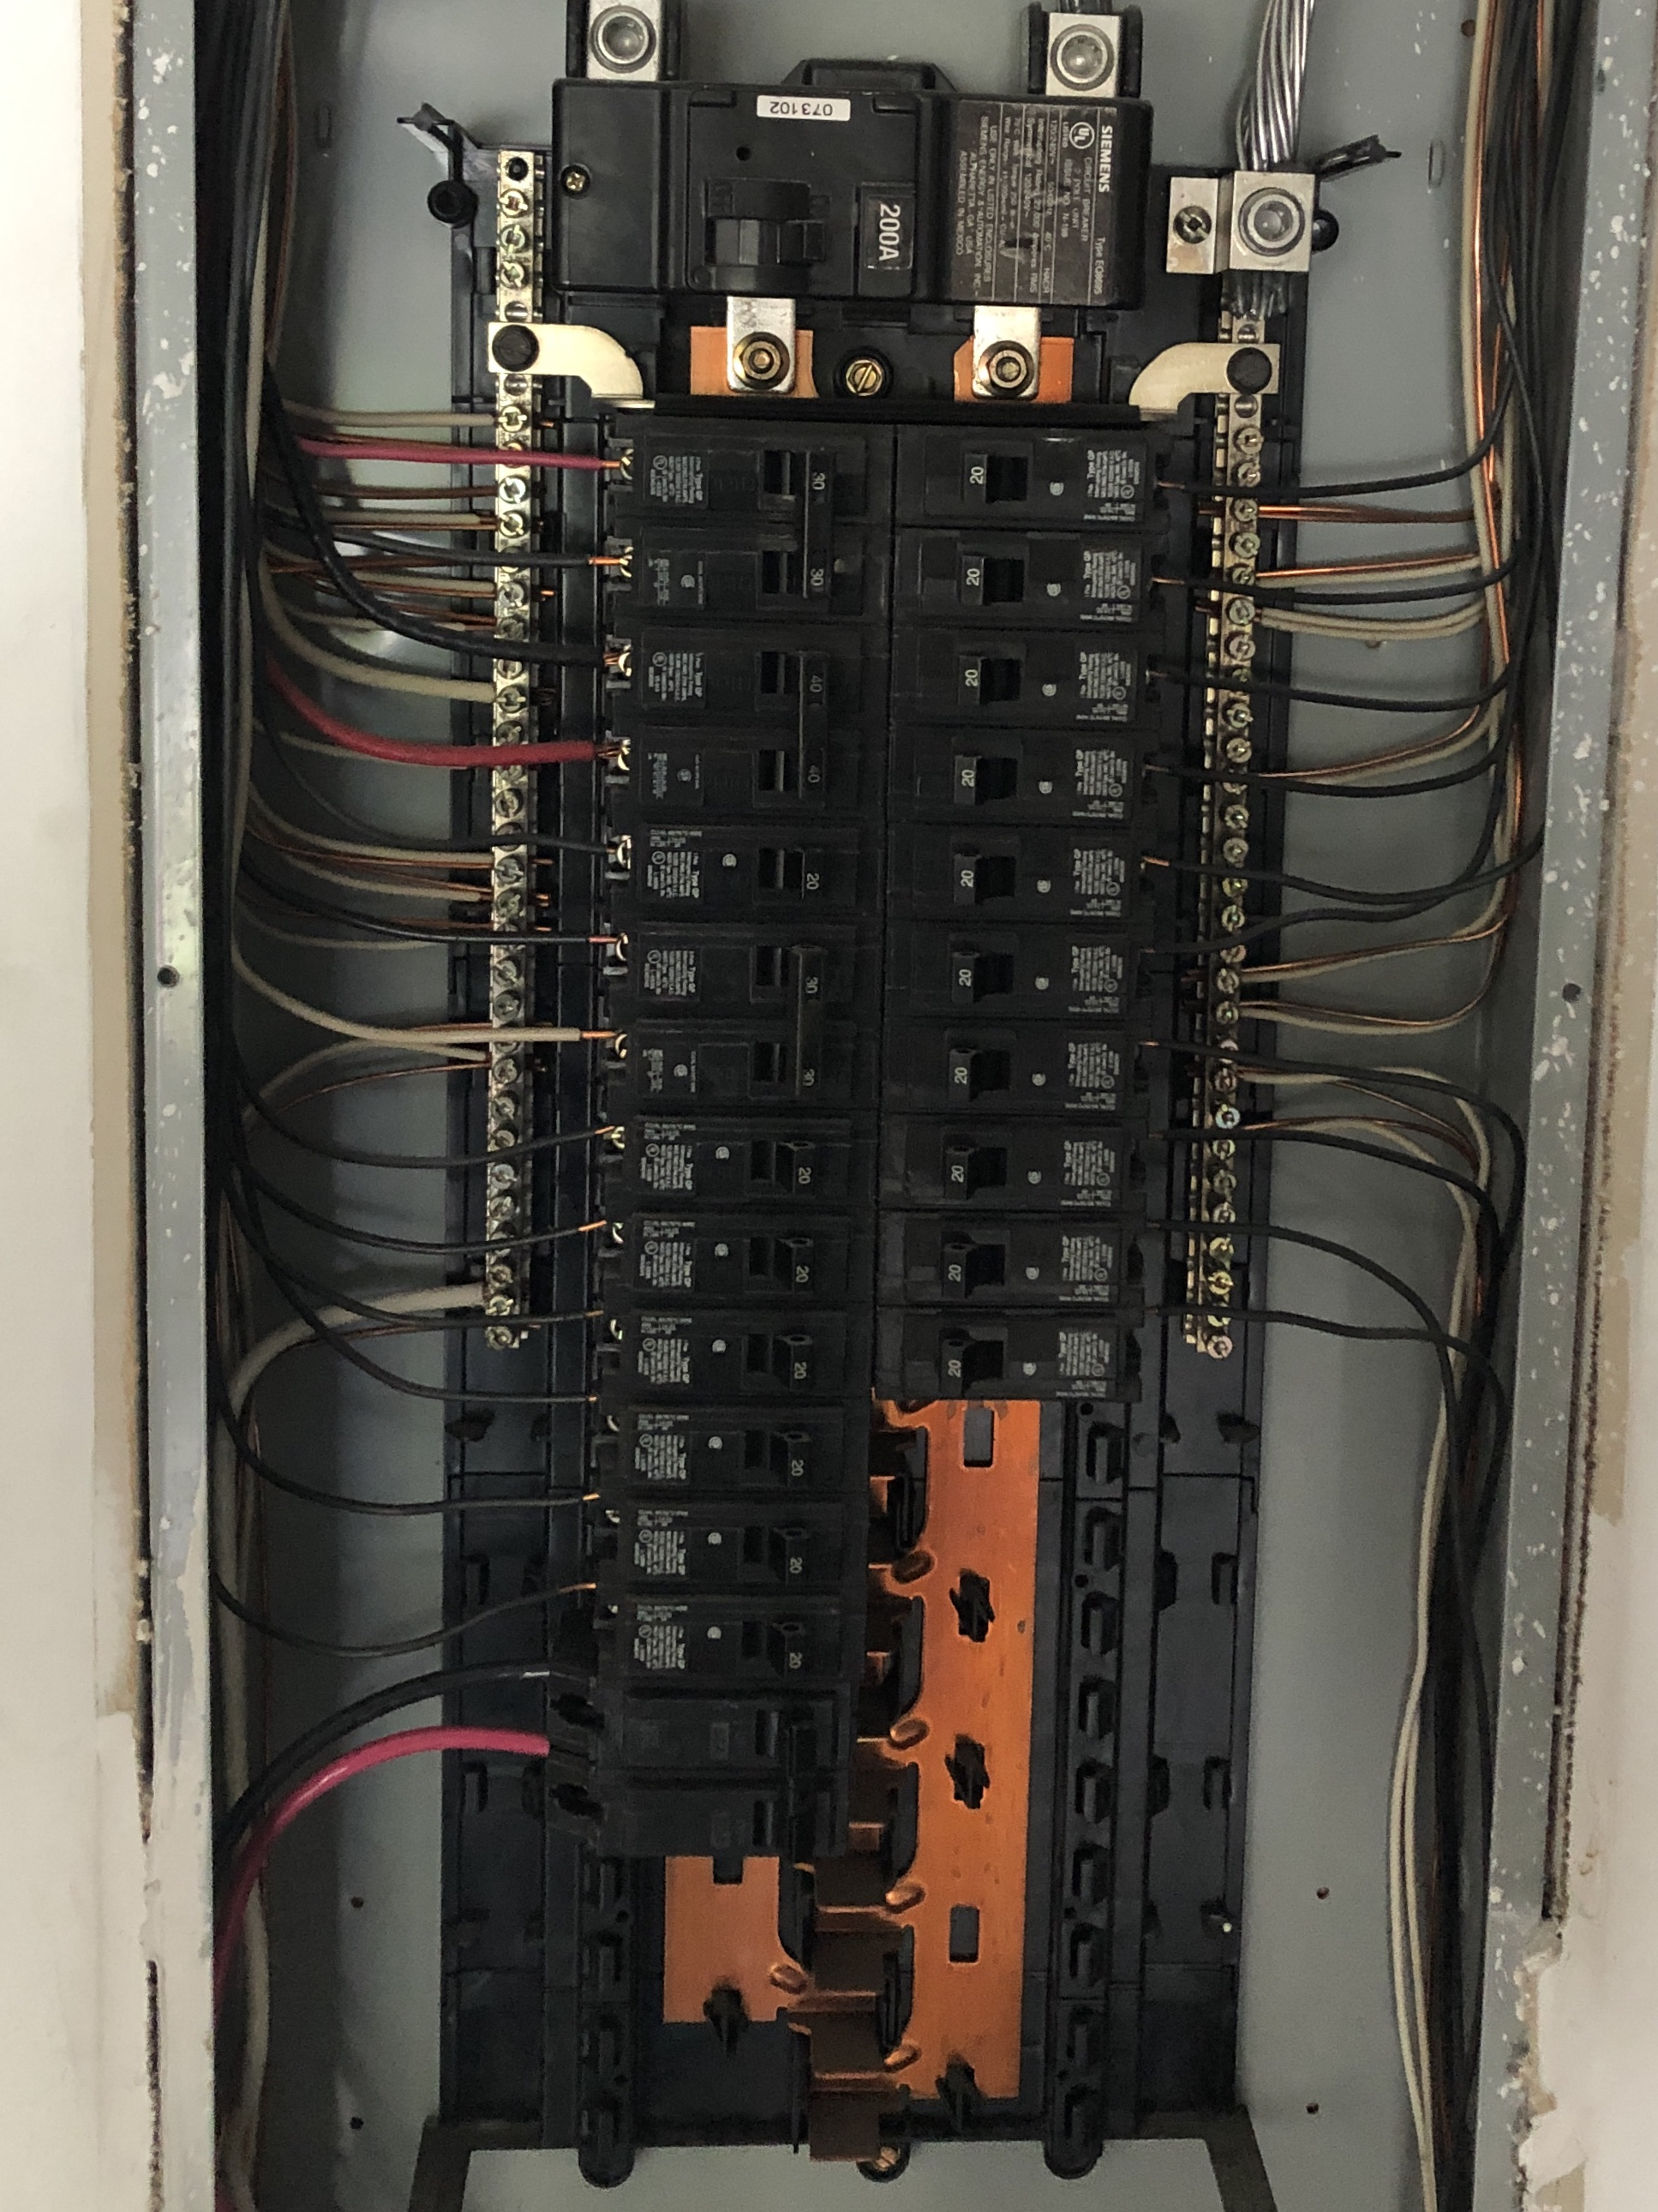 Panel Upgrades - New main panel InstallationsSub PanelsMain Breaker ReplacementsMain Grounding SystemsFuse to BreakersPool Panel InstallationsLabel household circuits on existing panels